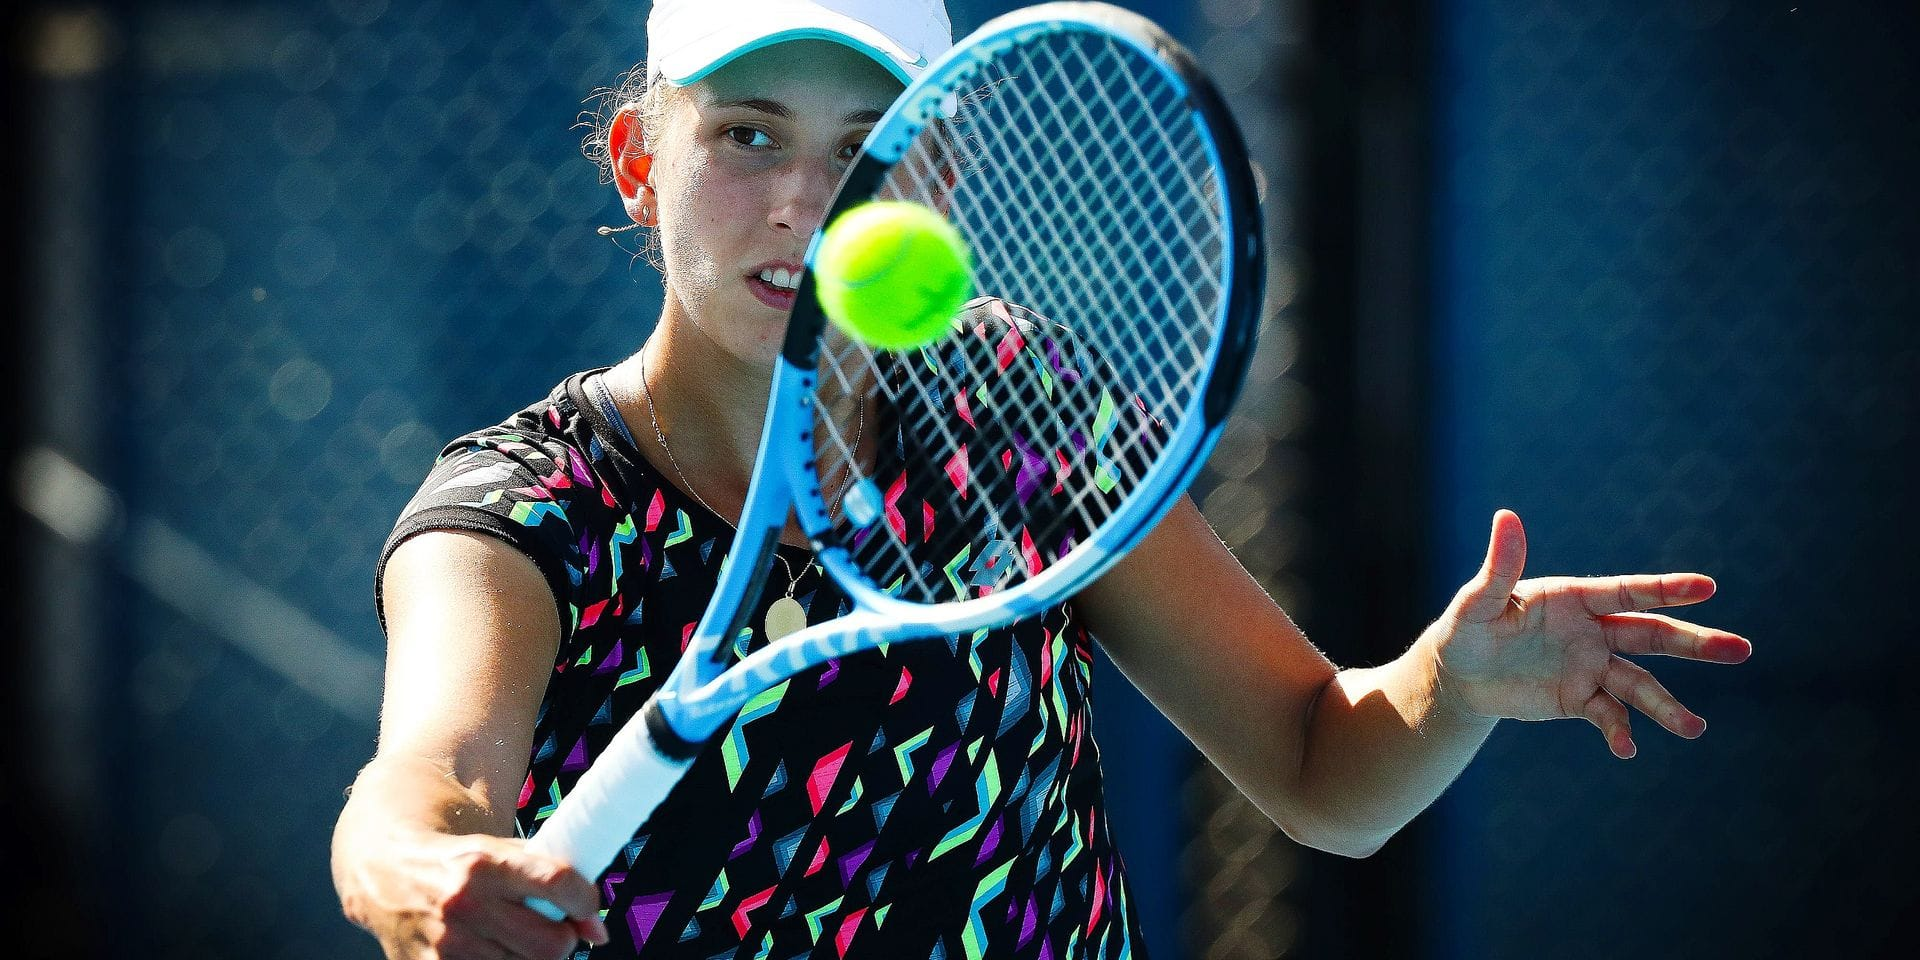 Elise Mertens (WTA 37) pictured at a training session of Belgian Elise Mertens (WTA 37) ahead of her quarter final match at the women's singles tournament at the 'Australian Open' tennis Grand Slam, Monday 22 January 2018 in Melbourne Park, Melbourne, Australia. This first grand slam of the season will be taking place from 15 to 28 January. BELGA PHOTO PATRICK HAMILTON